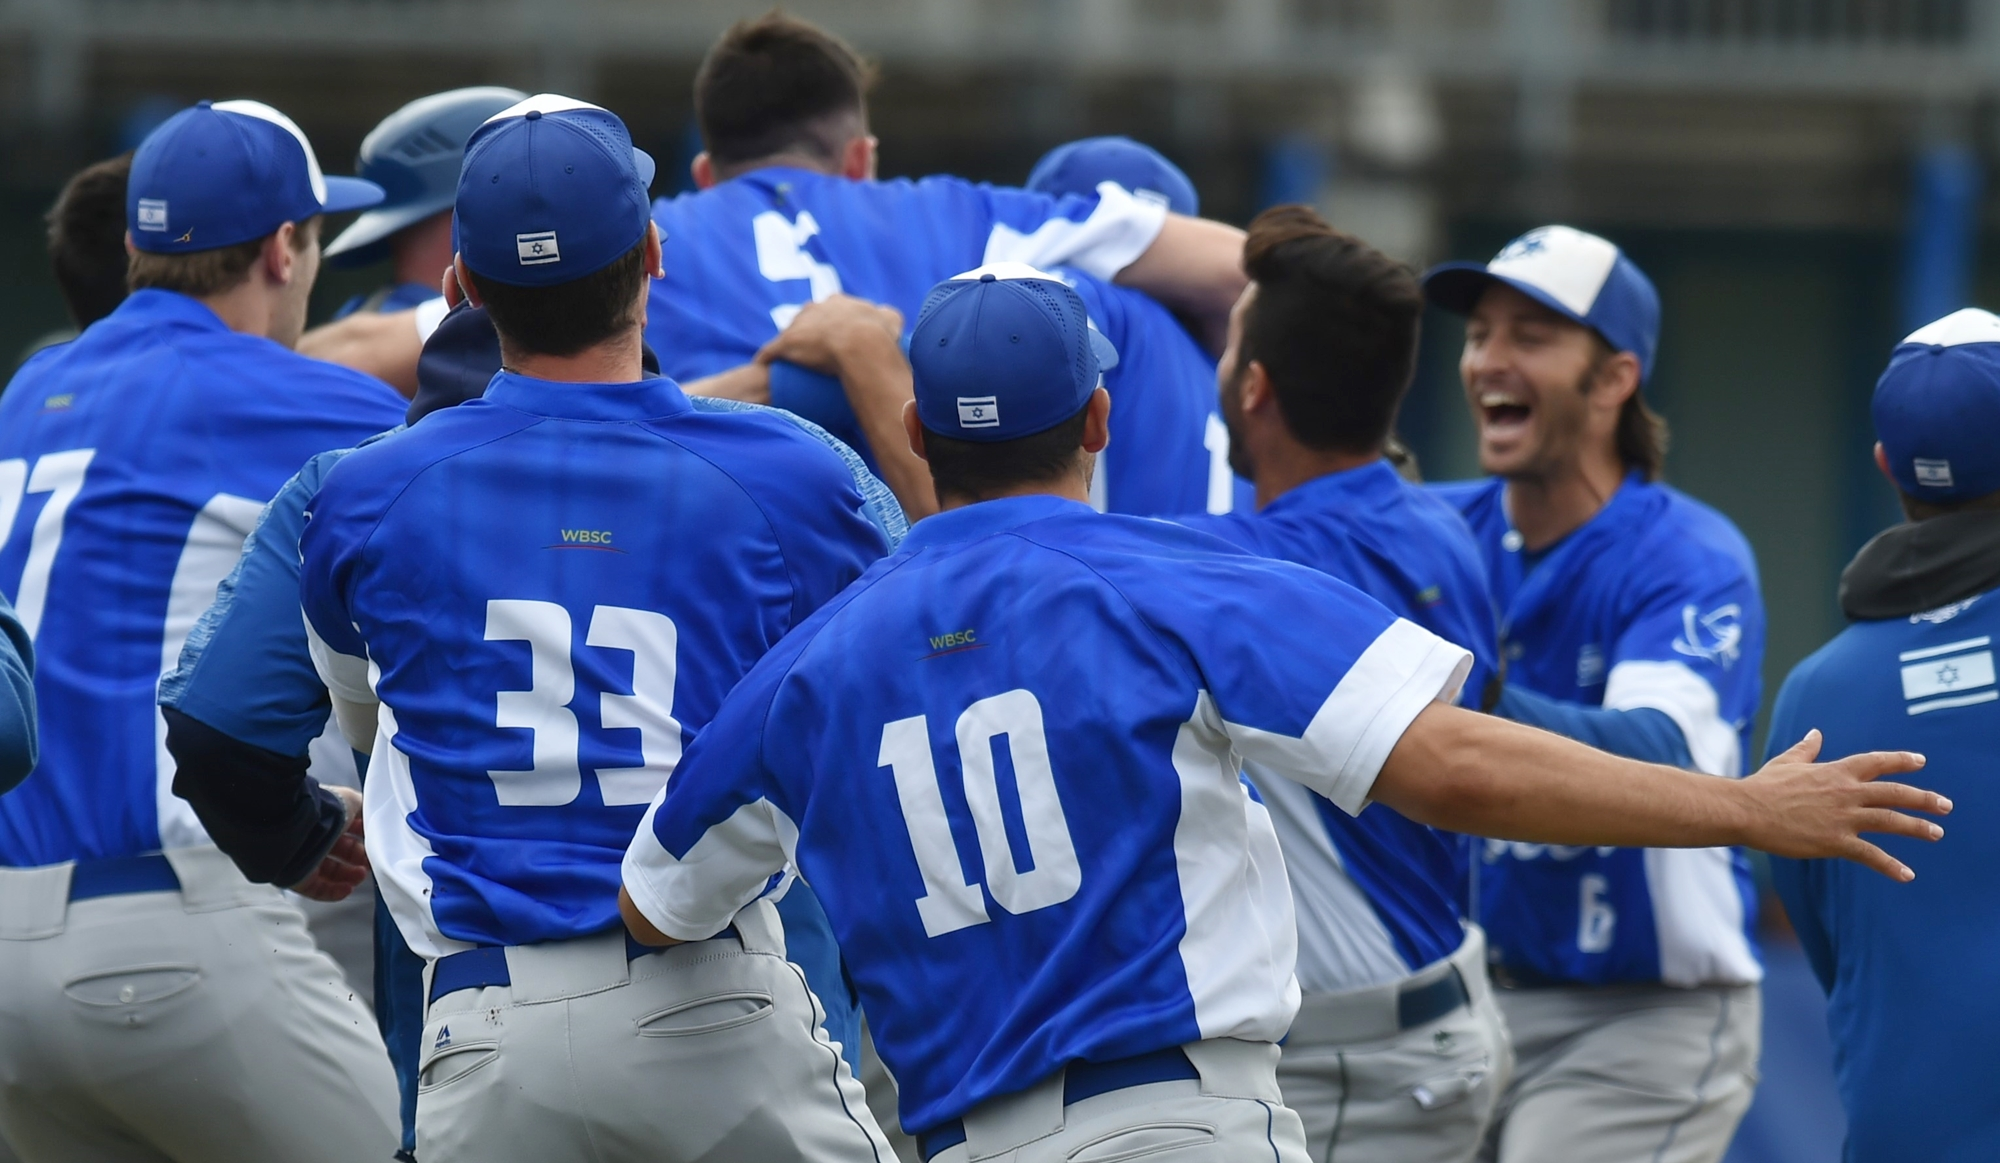 Israel celebrates after the final out